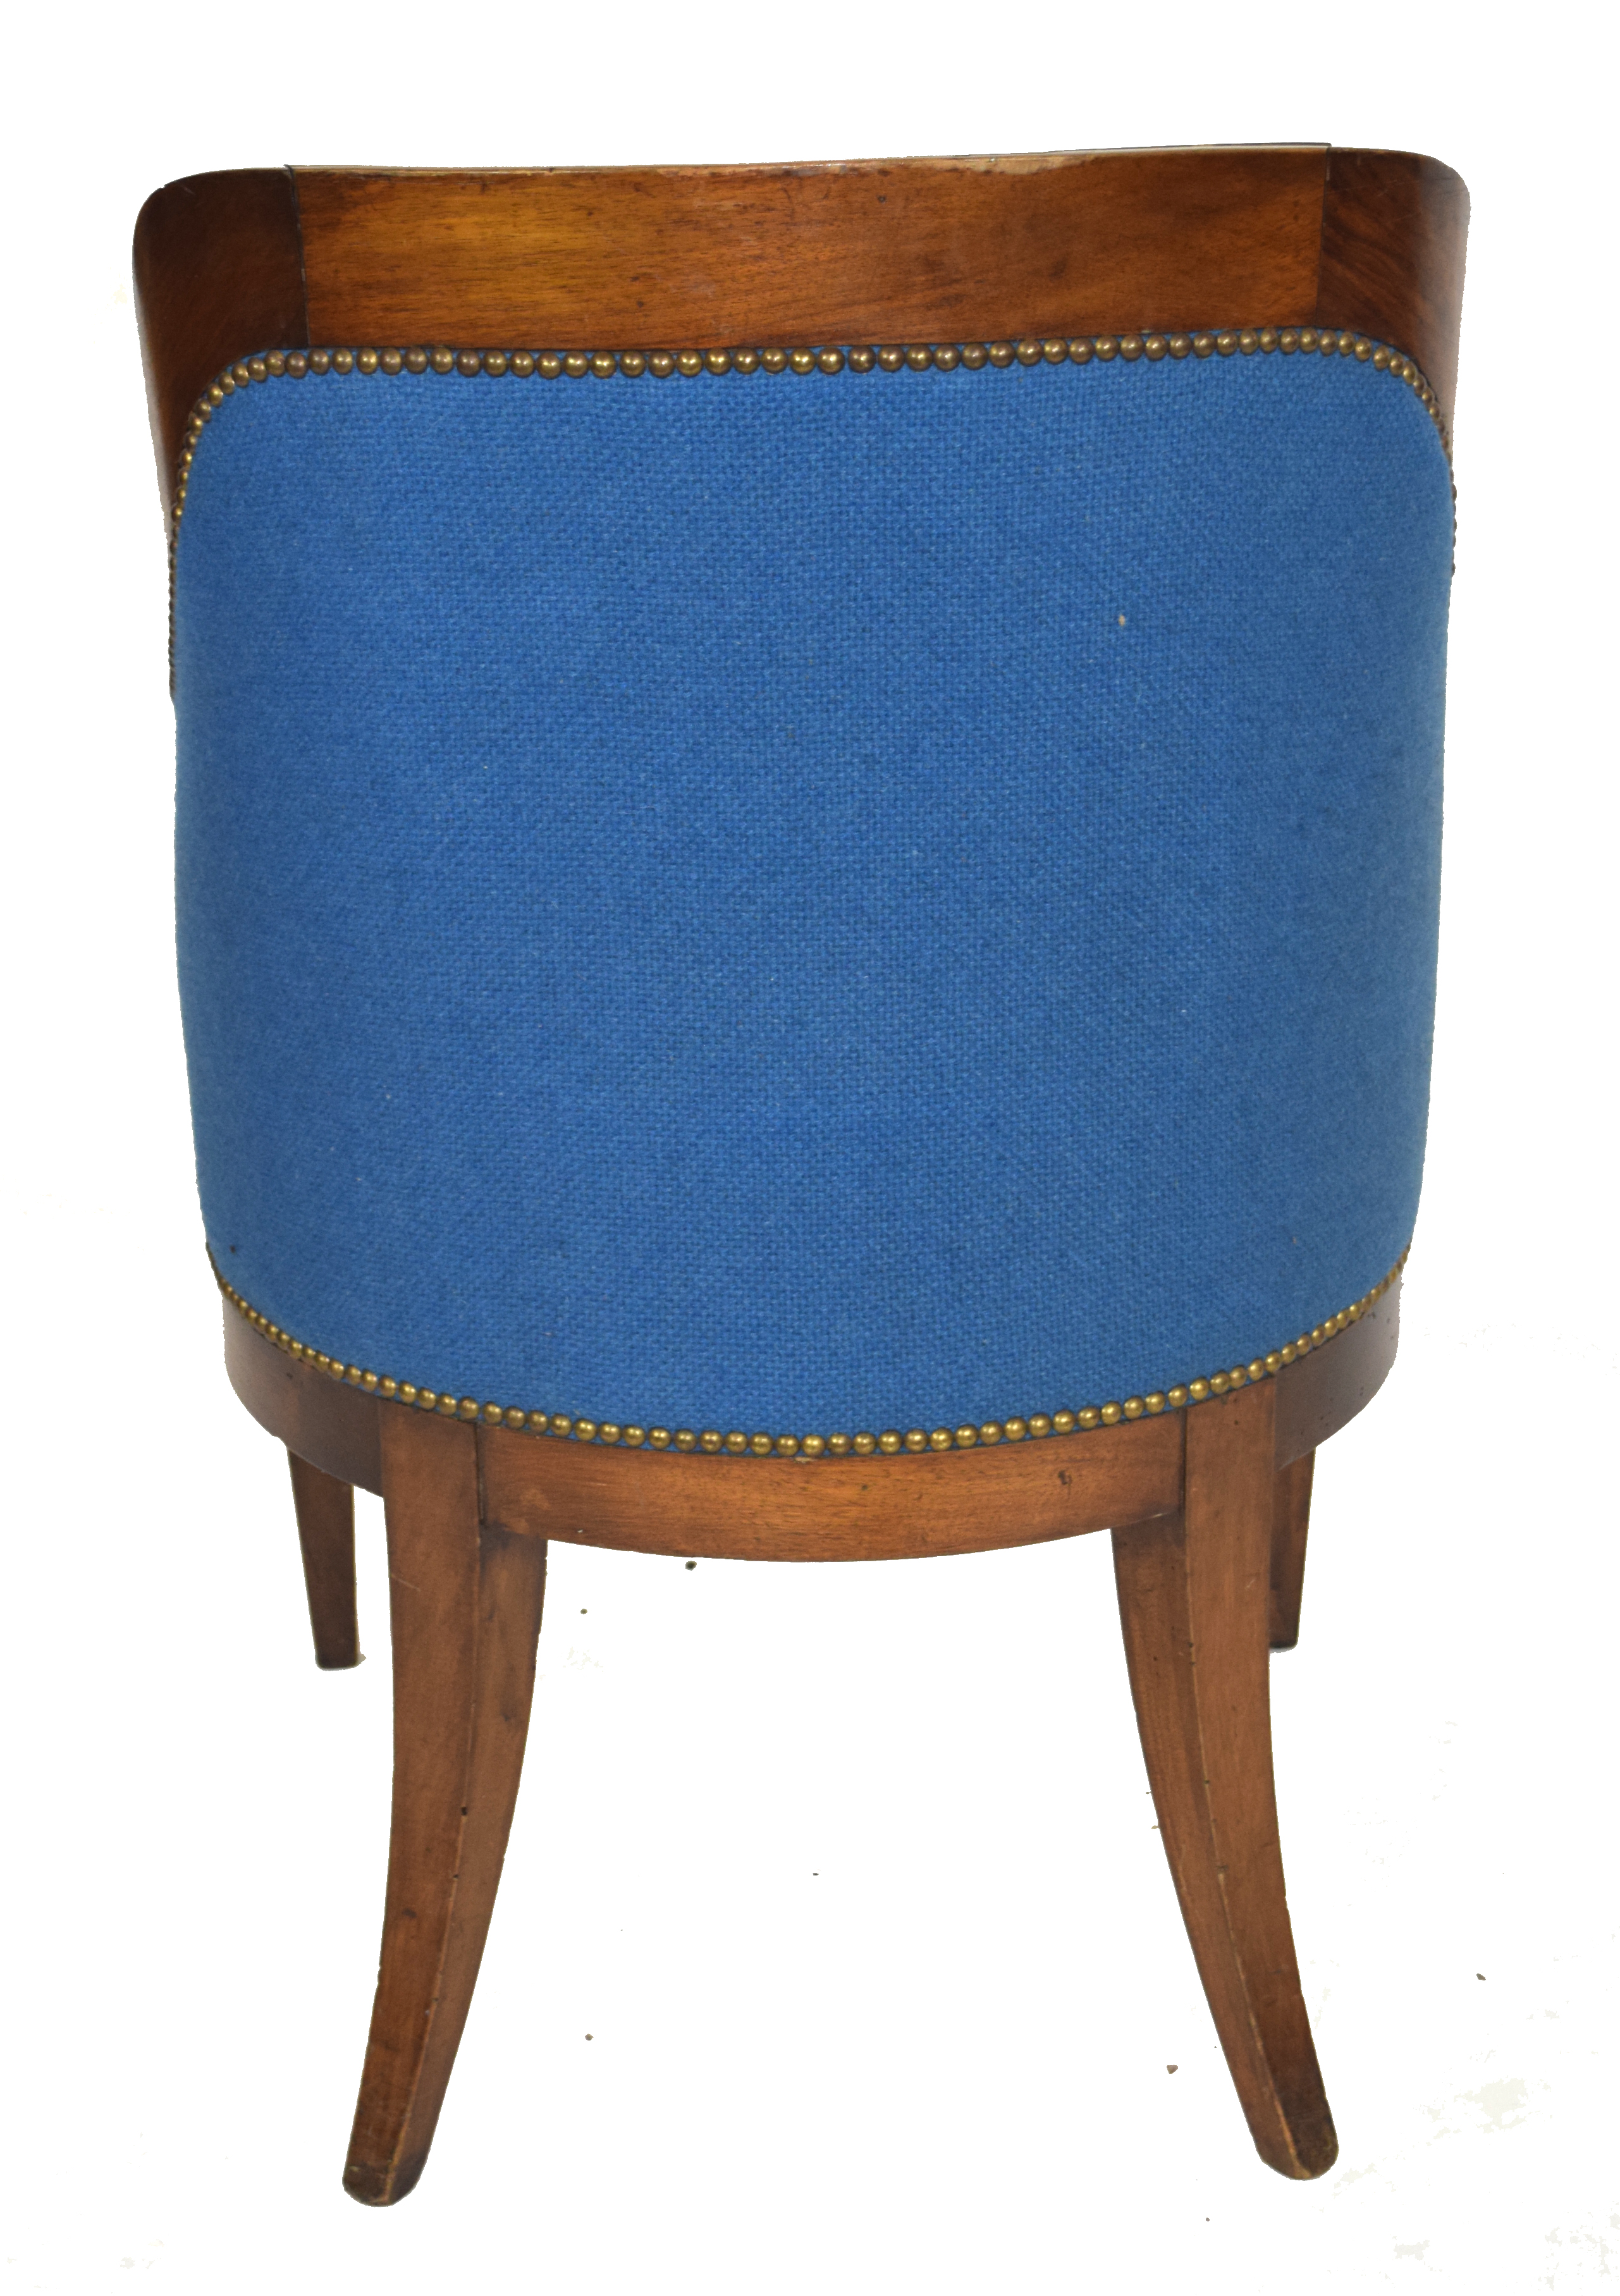 Late 19th/early 20th century mahogany framed tub chair with blue upholstery, 58cm wide Condition: - Image 4 of 5